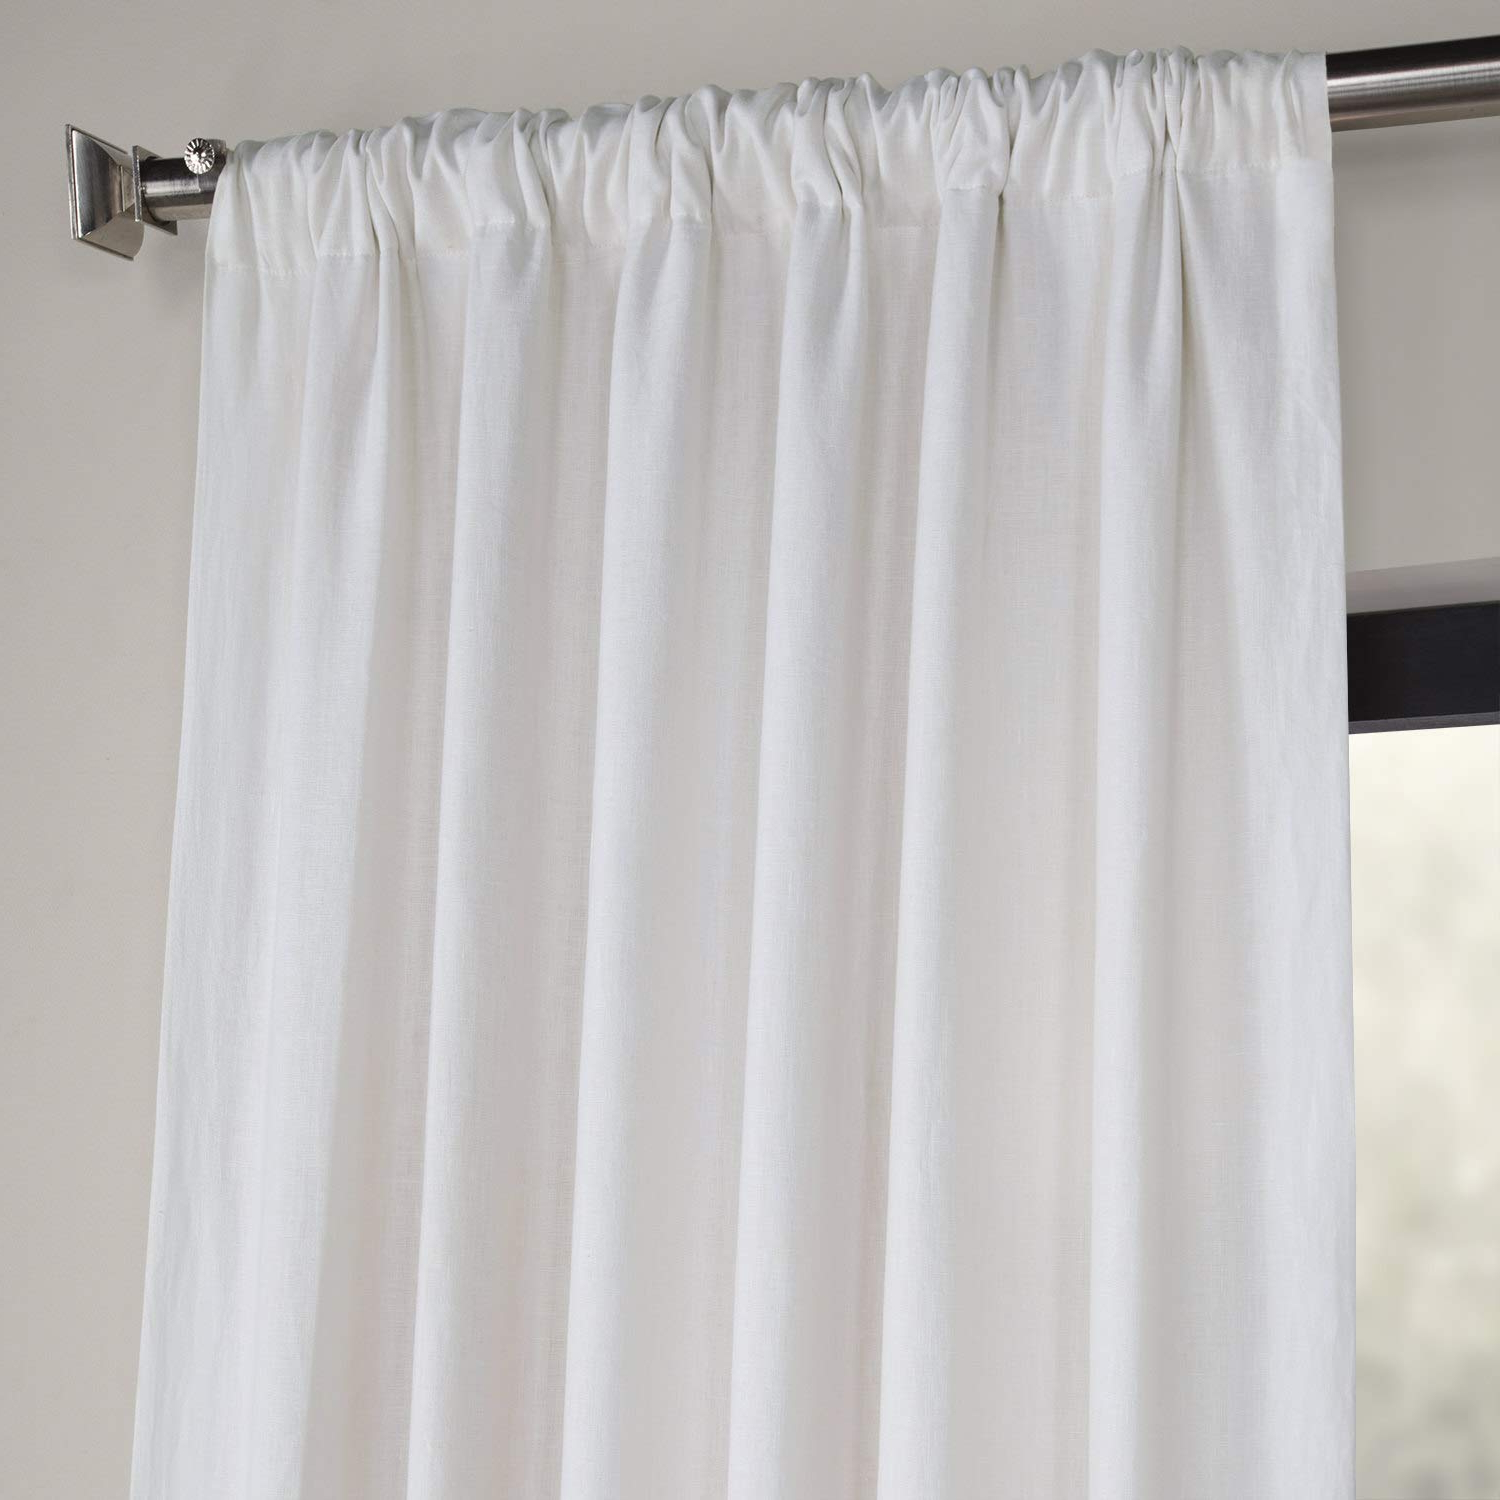 Most Popular Ln Xs1704 96 French Linen Curtain, Crisp White, 50 X 96 Throughout French Linen Lined Curtain Panels (View 14 of 20)